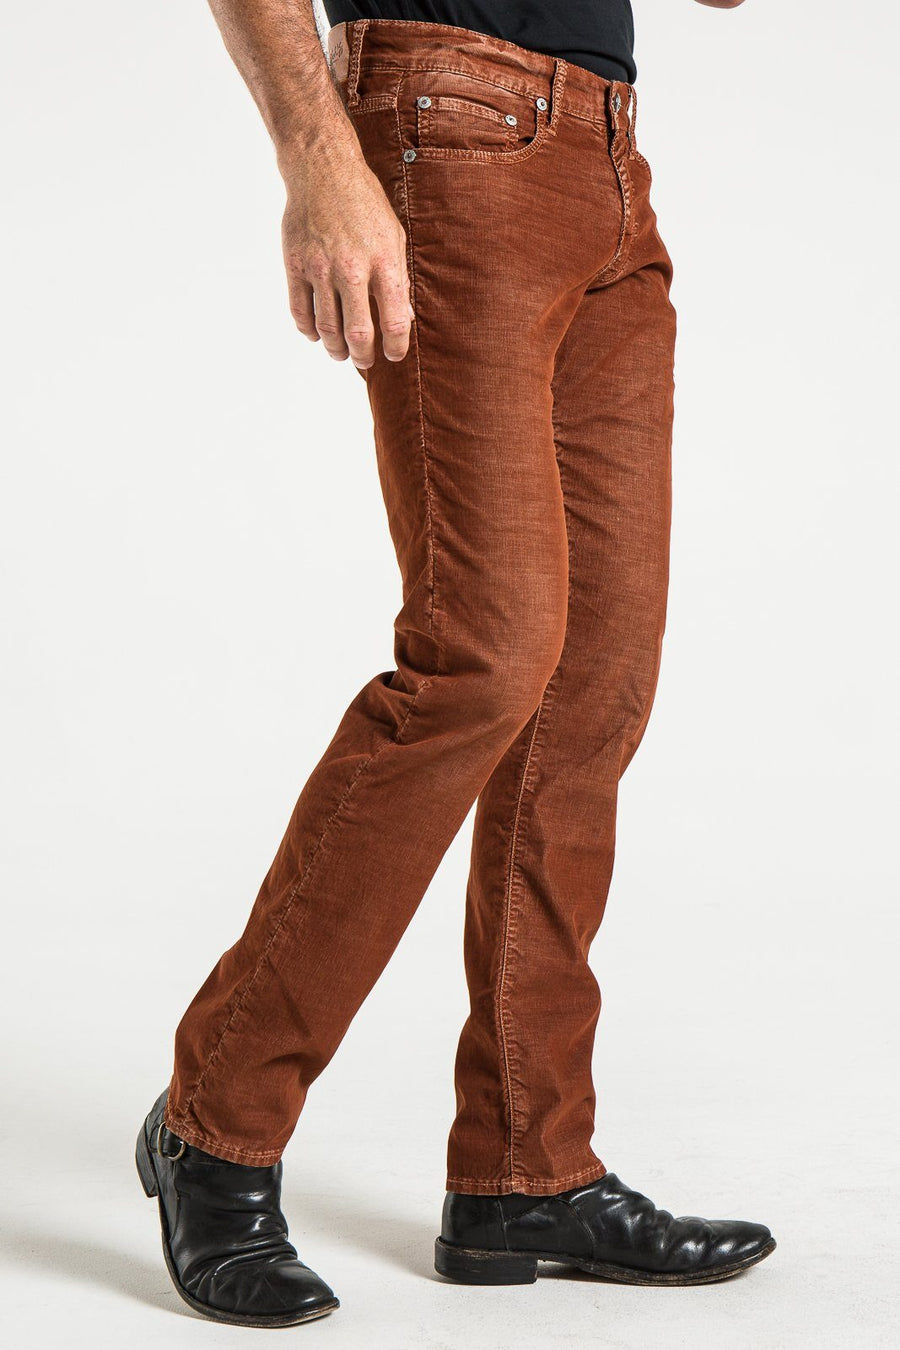 BARFLY SLIM IN RUST CORDUROY